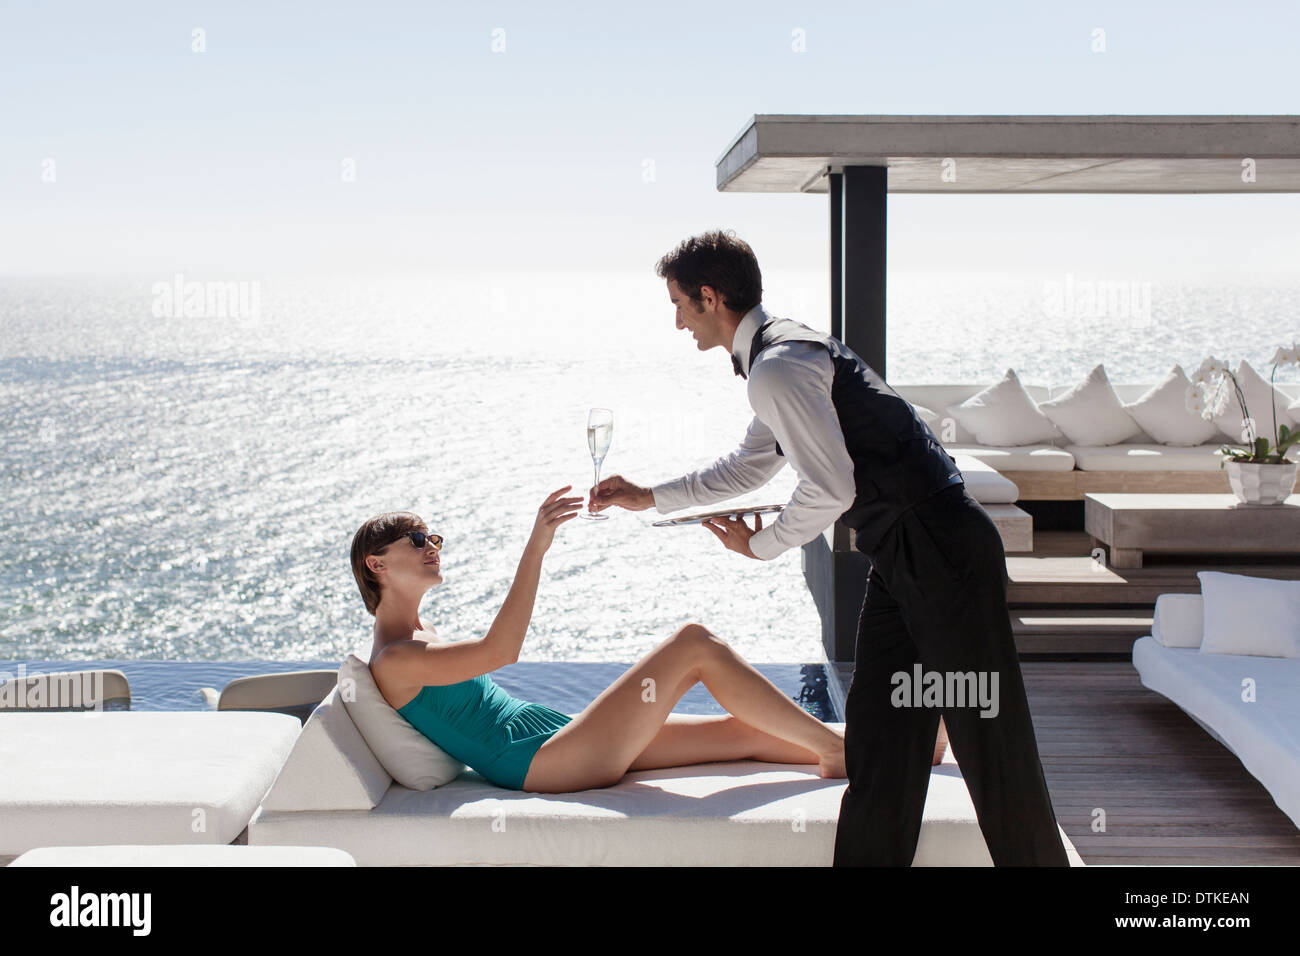 Waiter serving woman drinks outdoors - Stock Image